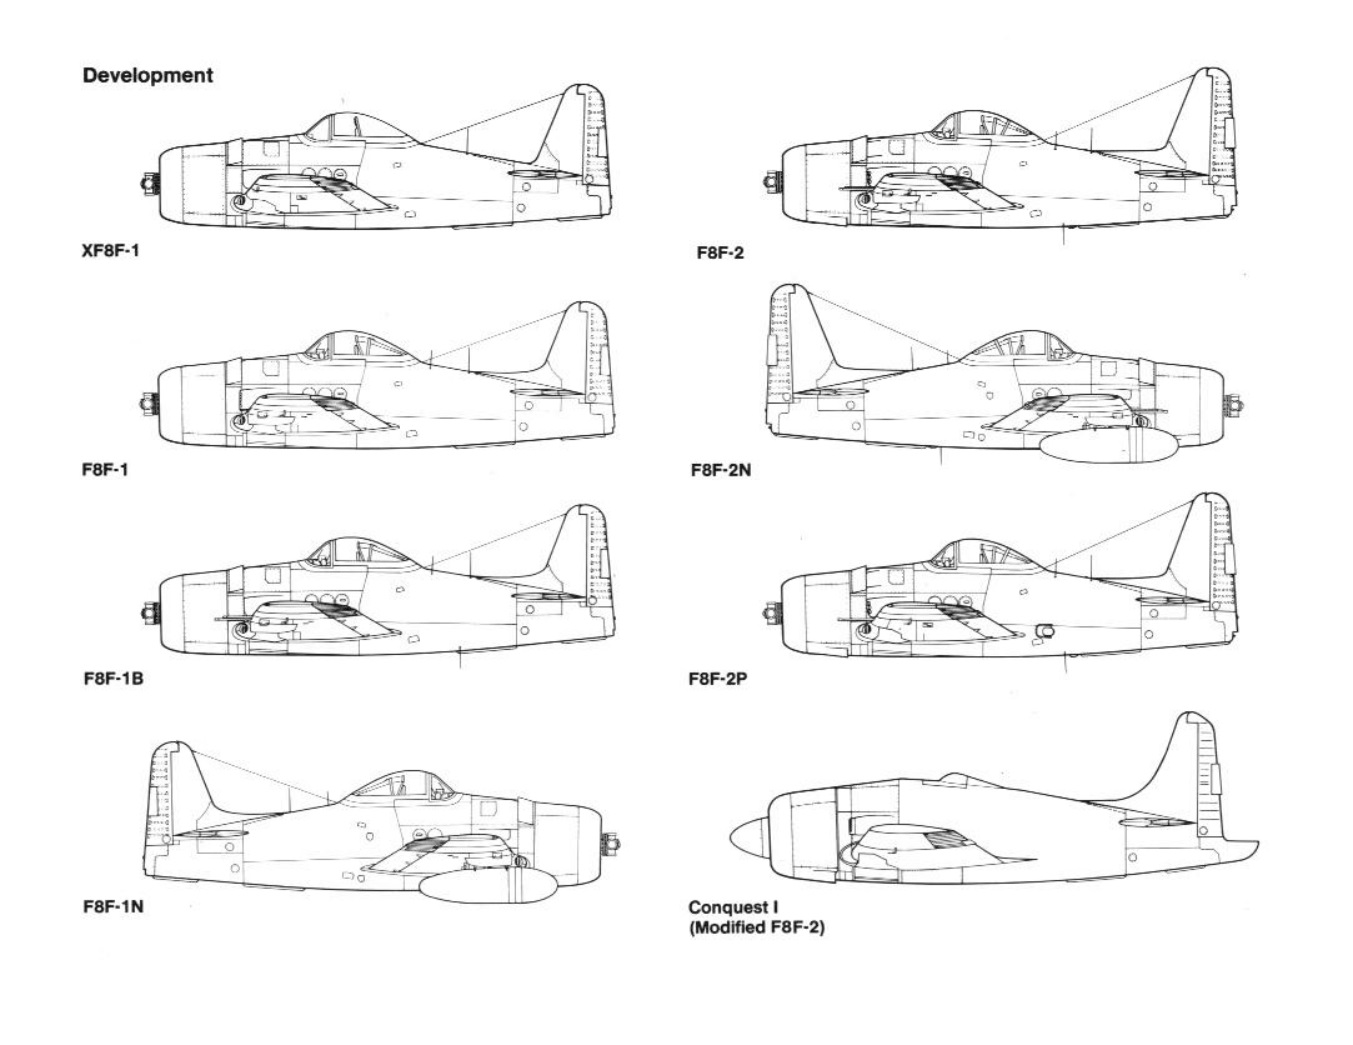 Grumman F8f Bearcat Weapons And Warfare Aircraft Piston Engine Diagram Last Of The Line Engined Carrier Based Fighters Which Initiated With Ff 1931 Was Designed To Be Capable